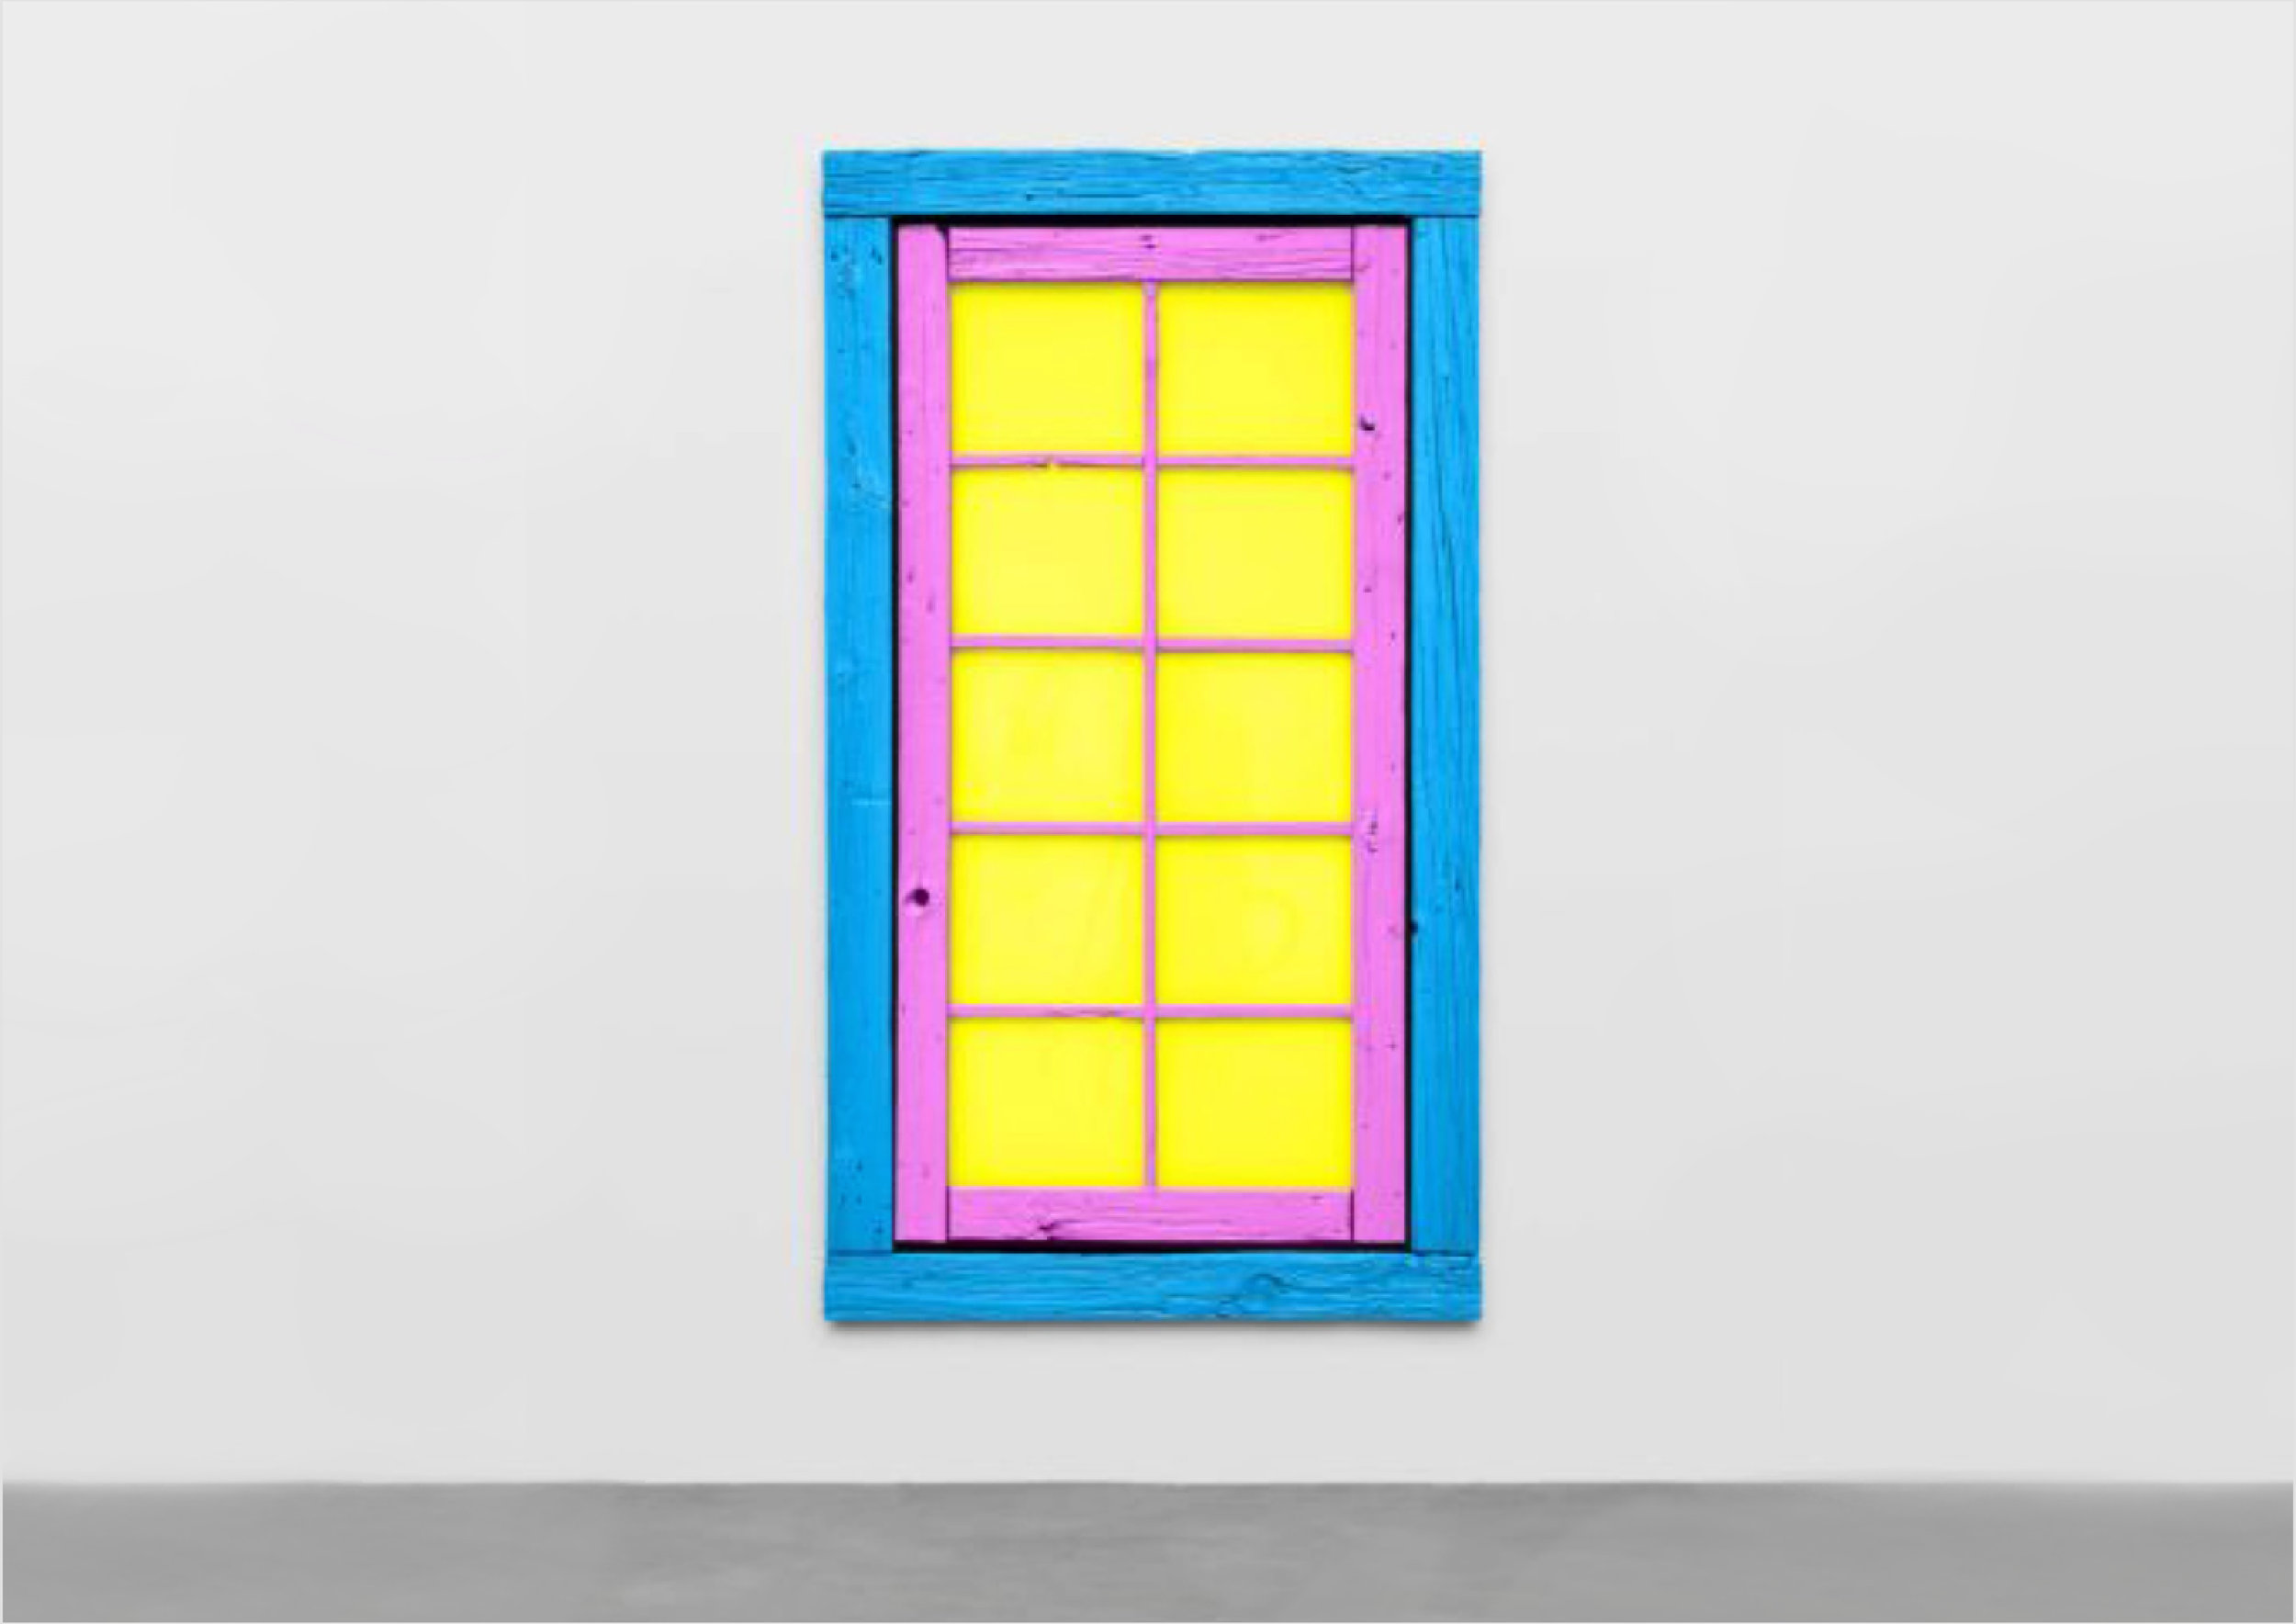 Before  Ugo Rondinone  (Art Basel) was associated with neon painted rocks he worked with doors and windows in pop art colors. I just love those works! Hey there, why not hang a door on a wall?